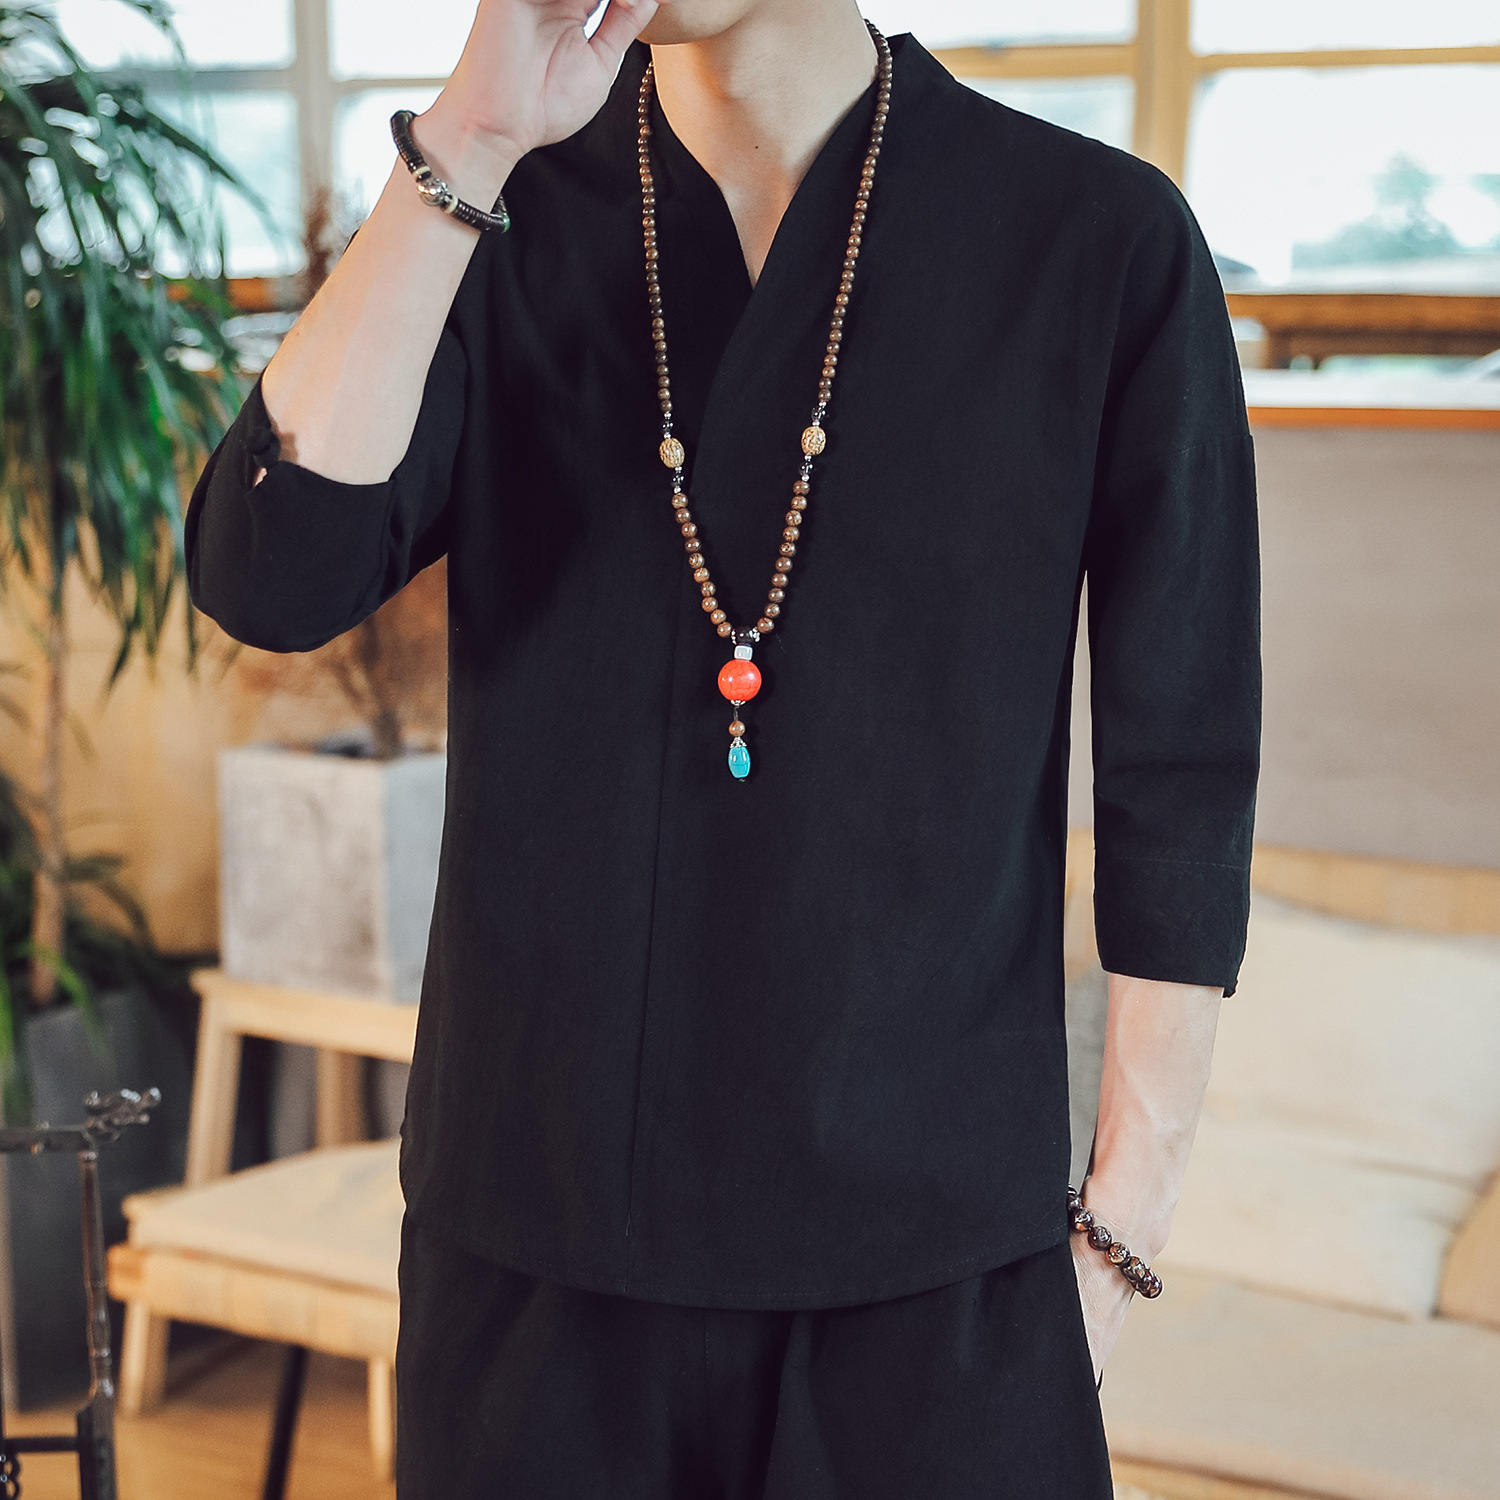 0376 Summer Top Three Quarter Sleeve Chinese Style Retro Vintage T Shirt Casual V Neck Plus Size 5XL Loose T shirt Men Clothing in T Shirts from Men 39 s Clothing